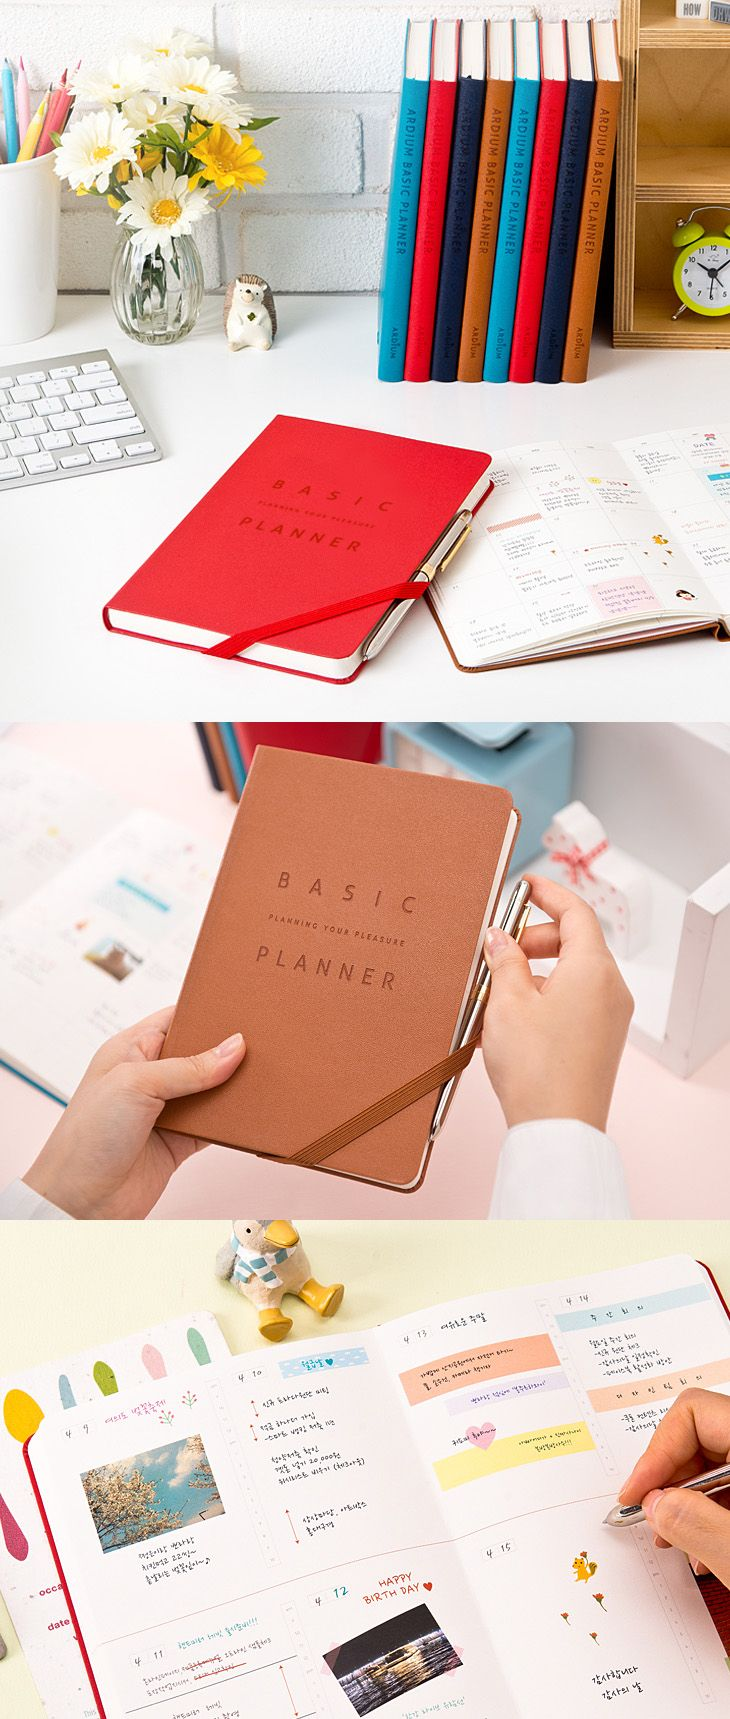 Such a perfect and classic planner…time to get organized! So many features: an inside pocket to hold small items, daily plan with time slots, sections for yearly and monthly plans, a note section, all held together with band...even comes with a sticker set!